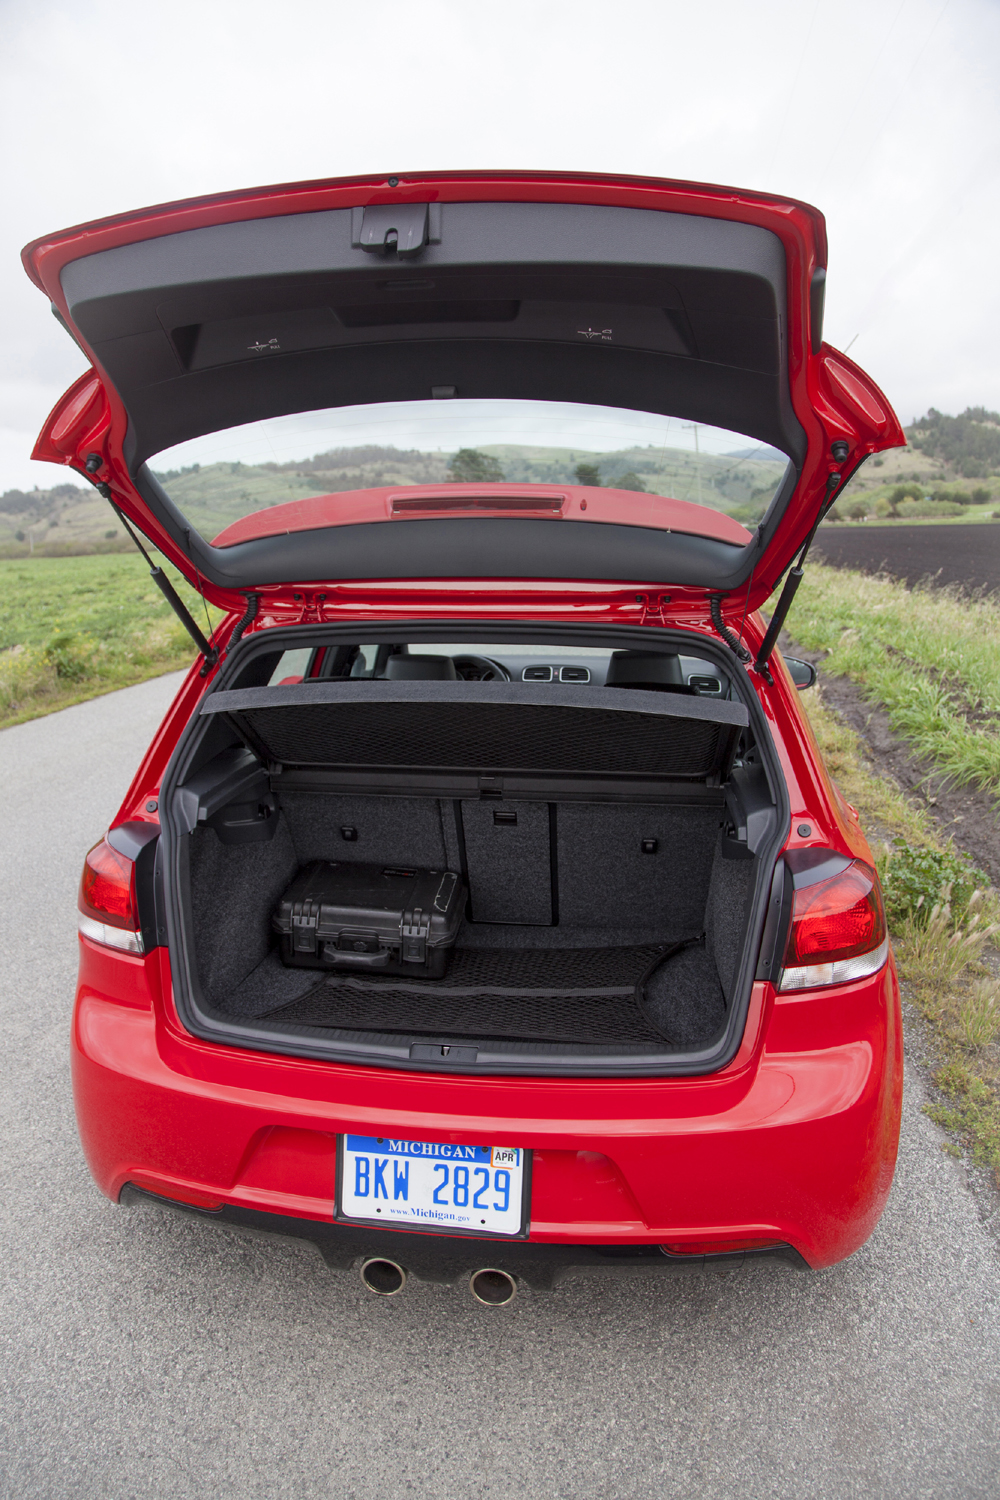 Manufacturer photo: The new 2012 Golf R represents intelligent downsizing